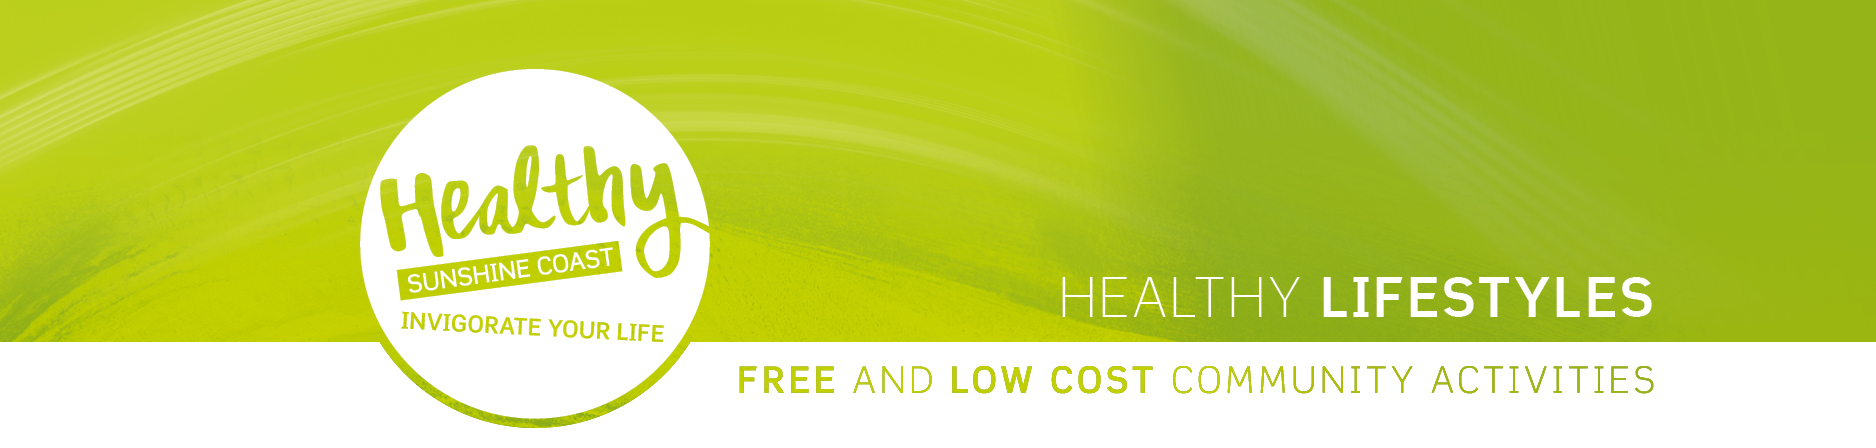 healthy lifestyles lime banner